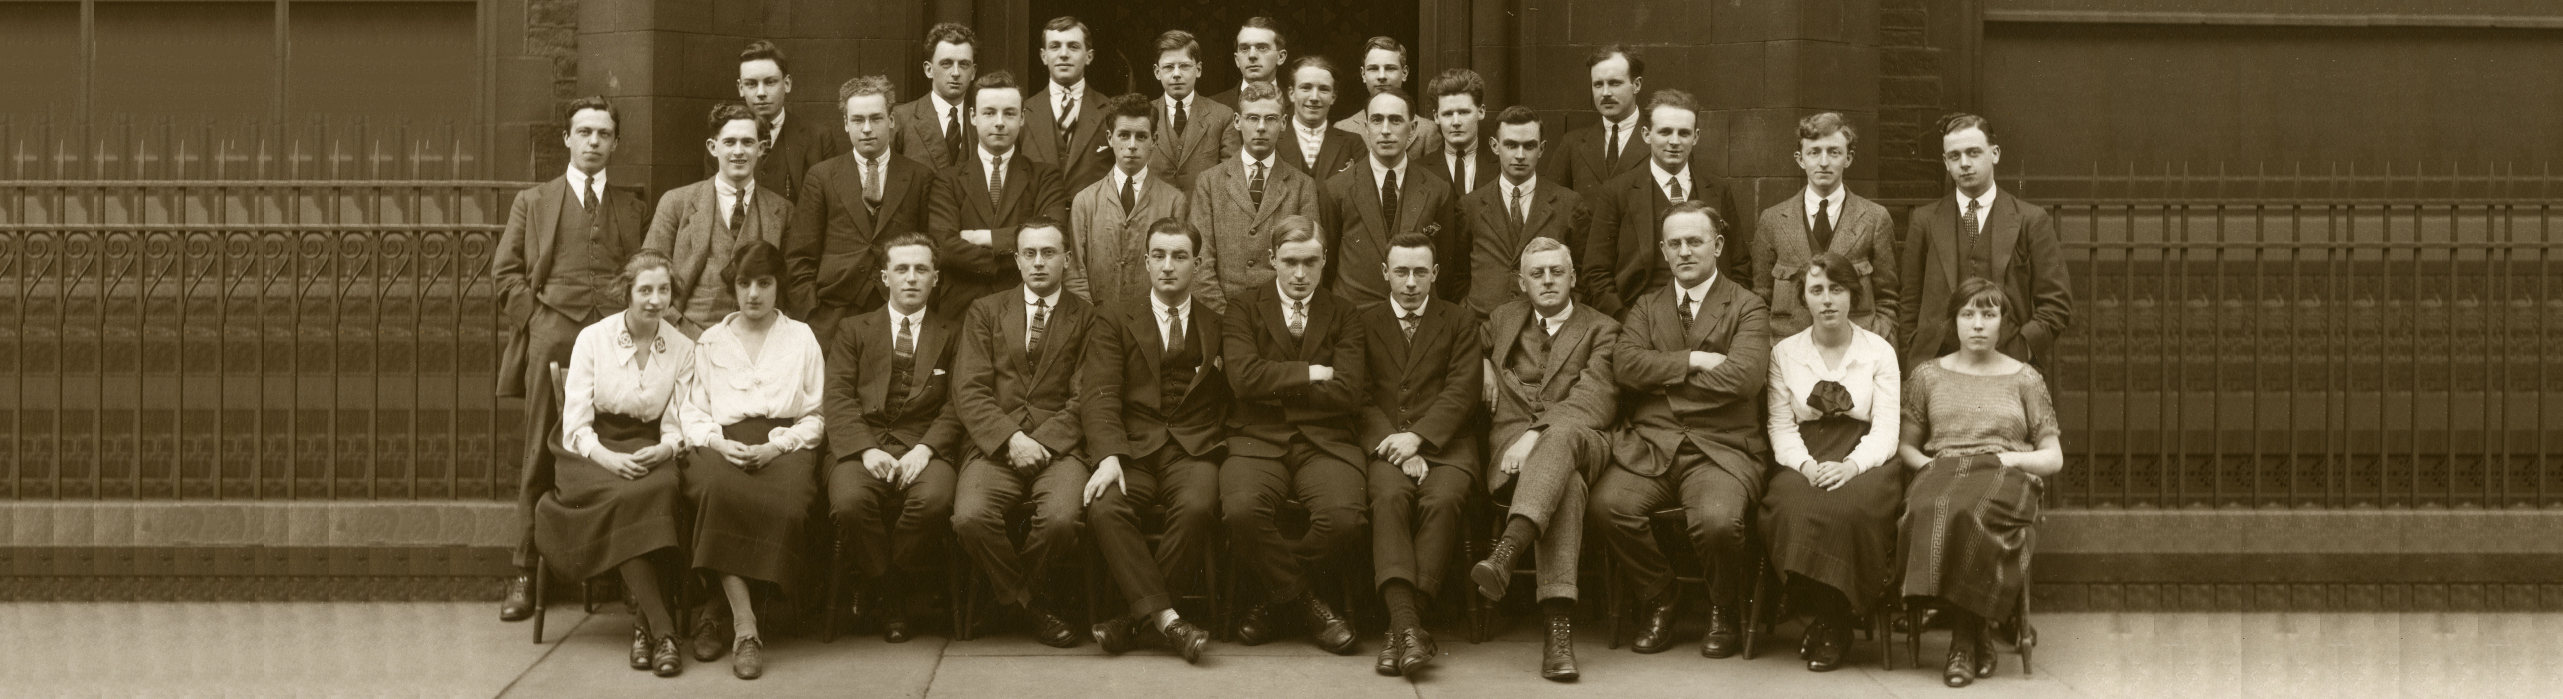 Huddersfield Technical College staff photograph